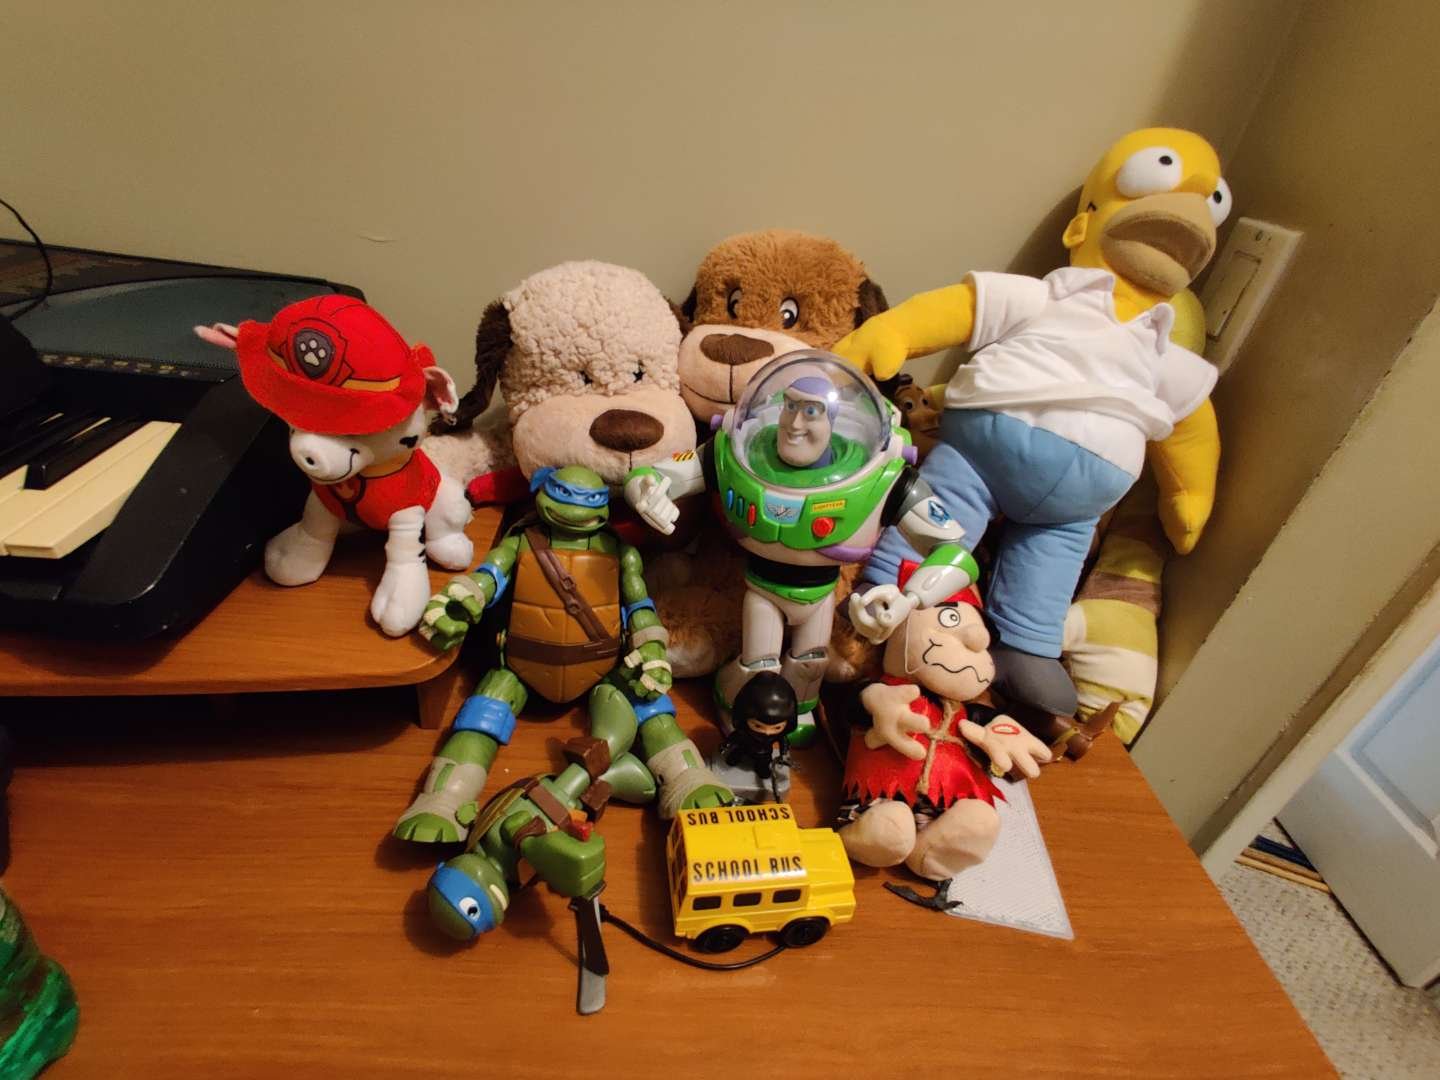 280 a lot of miscellaneous toys 279 buzz light-year and more